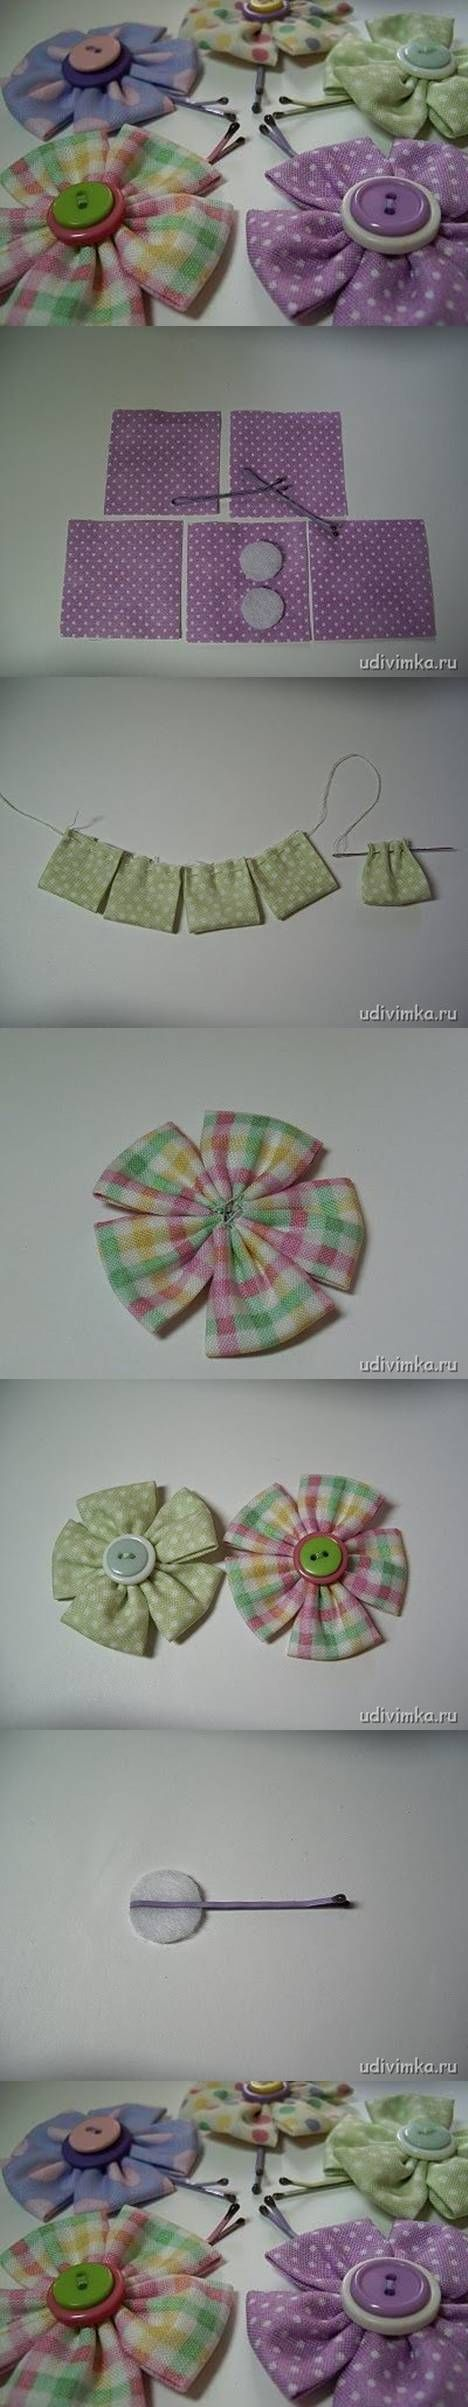 DIY Cute Fabric Flower Hairpin DIY Projects | UsefulDIY.com: